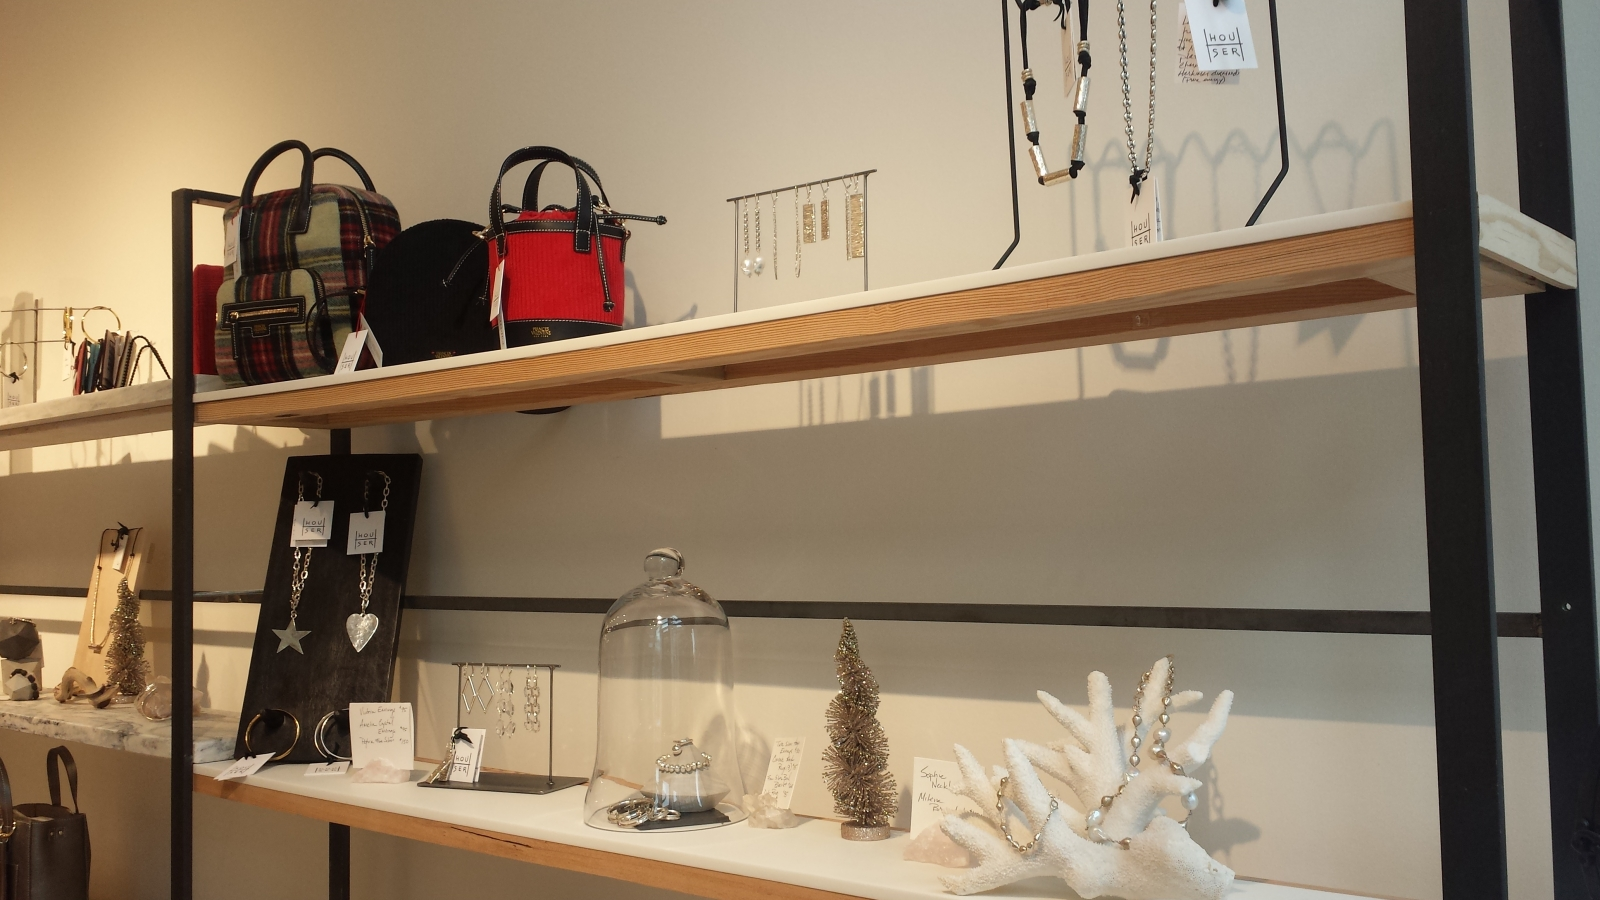 Frances Valentine bags and jewelry displays at Houser in North Loop. Photo by Lianna Matt.